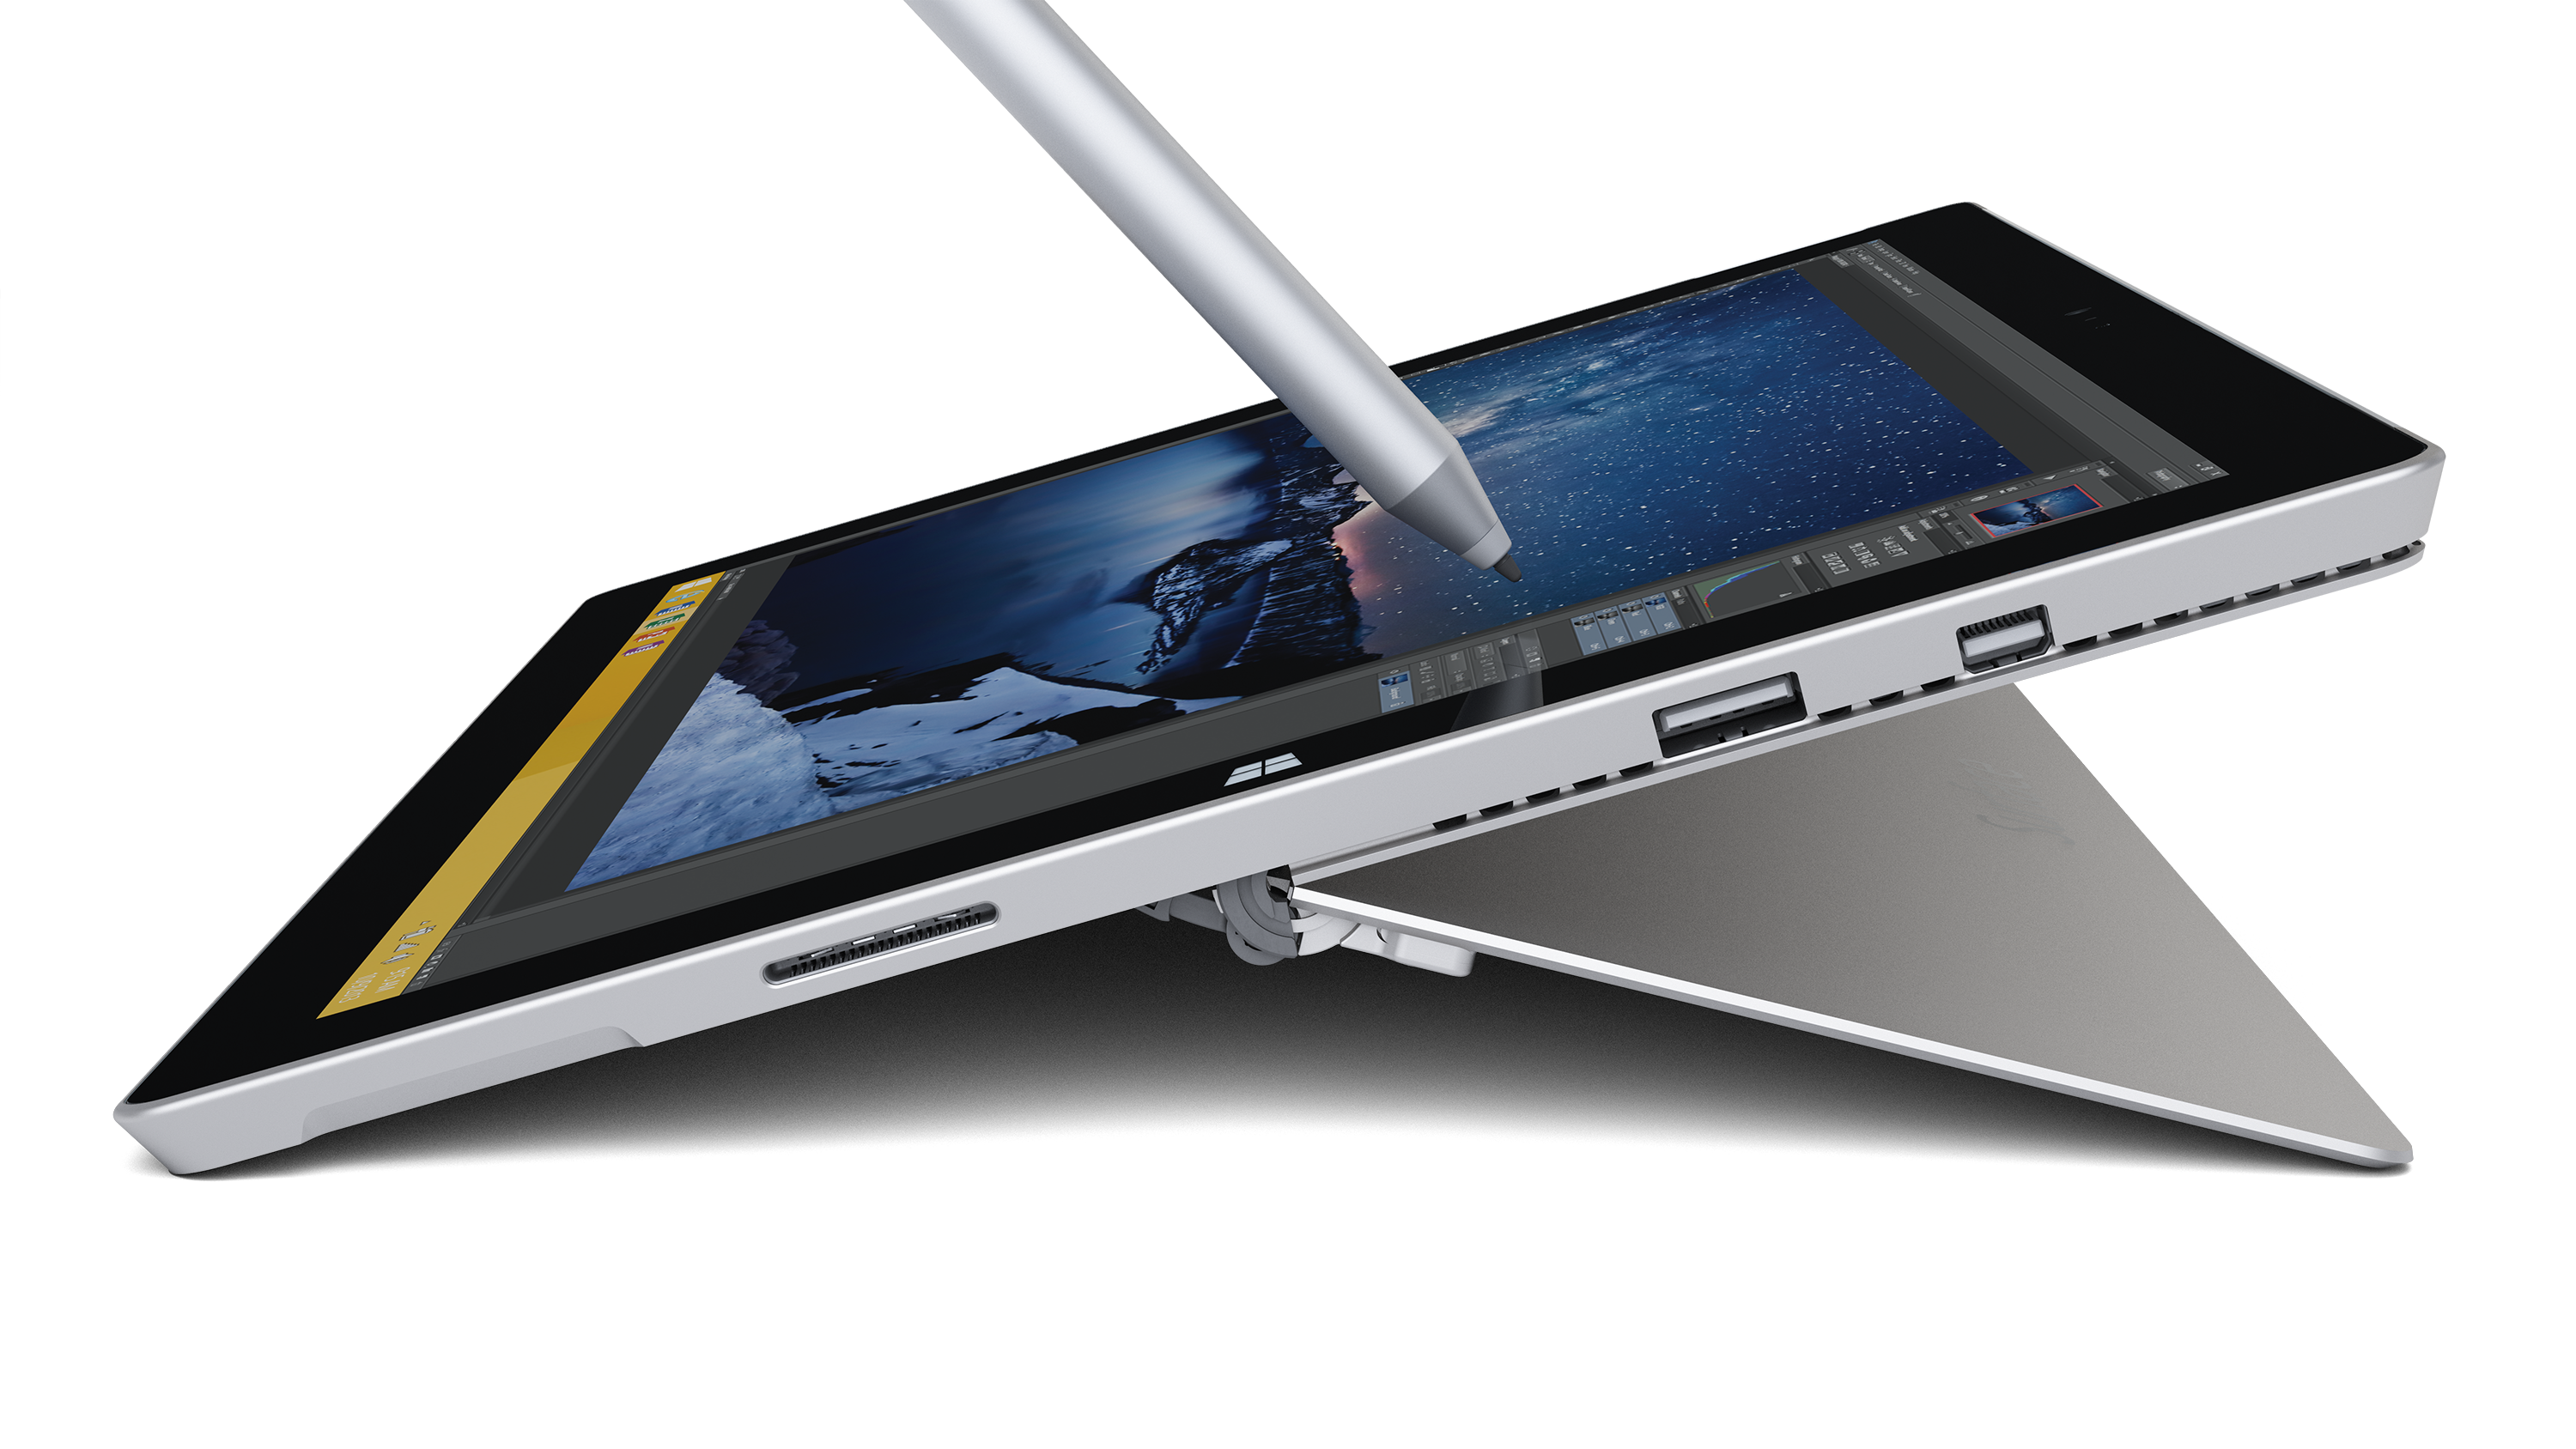 Microsoft Surface Pro 3 Core I5 4gb Ram 128gb Ssd 12 Inch Tablet 4 Windows 10 Silver Xcite Alghanim Electronics Best Online Shopping Experience In Kuwait